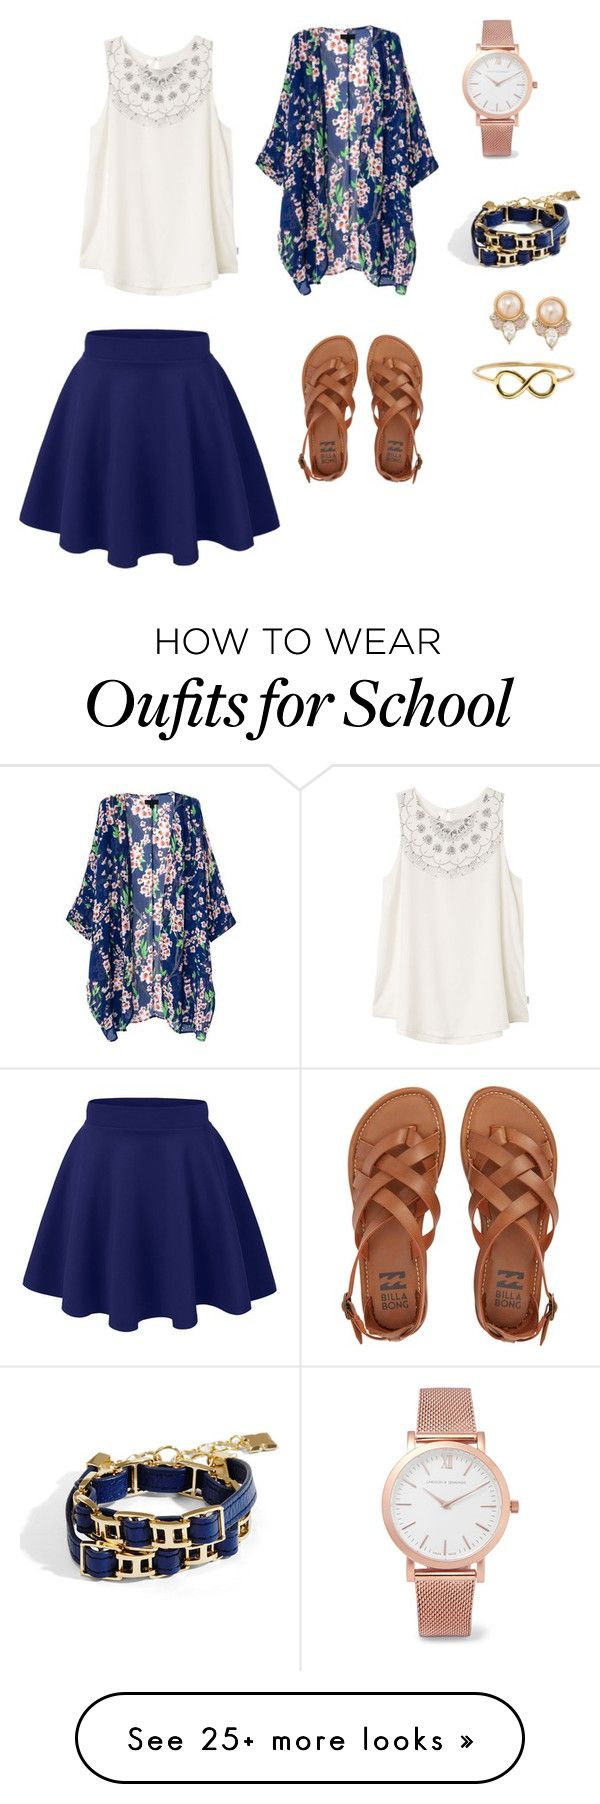 """""""Day to school"""" by alainamarie101 on Polyvore featuring RVCA, Billabong, Larsson & Jennings, BCBGMAXAZRIA and Carolee"""